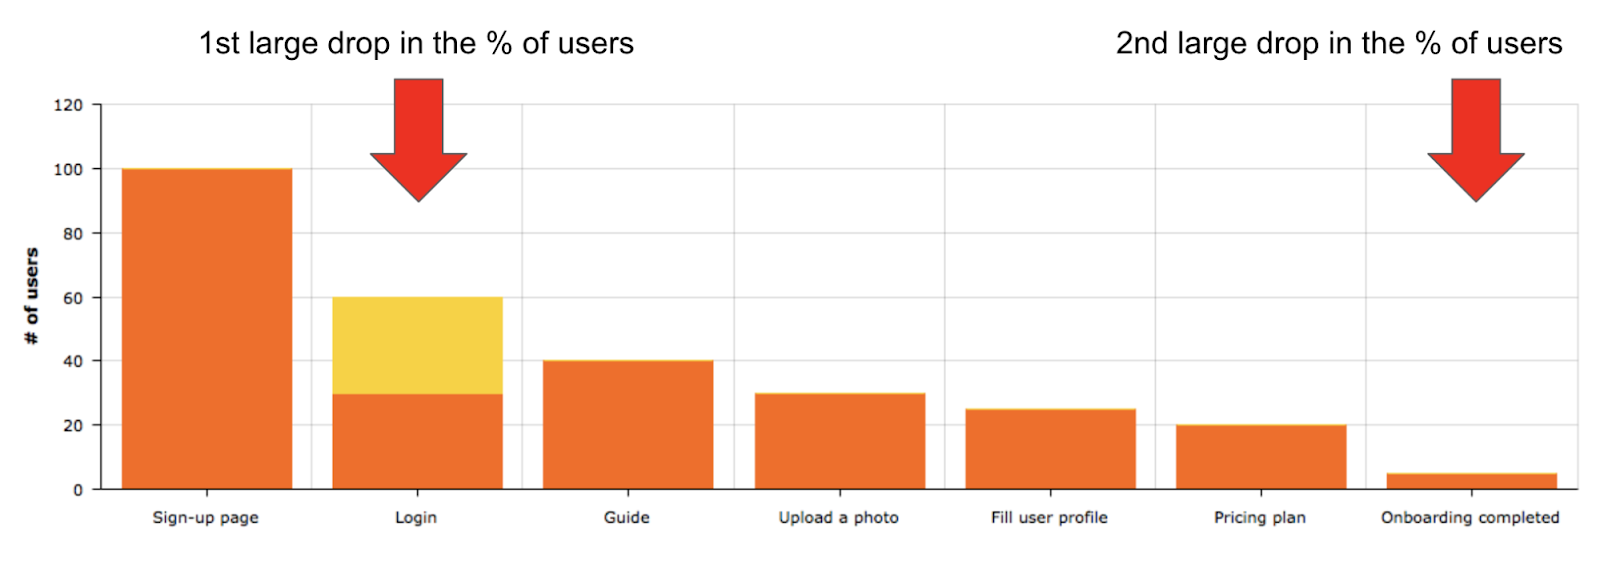 Identifying steps causing a drop in the % of users